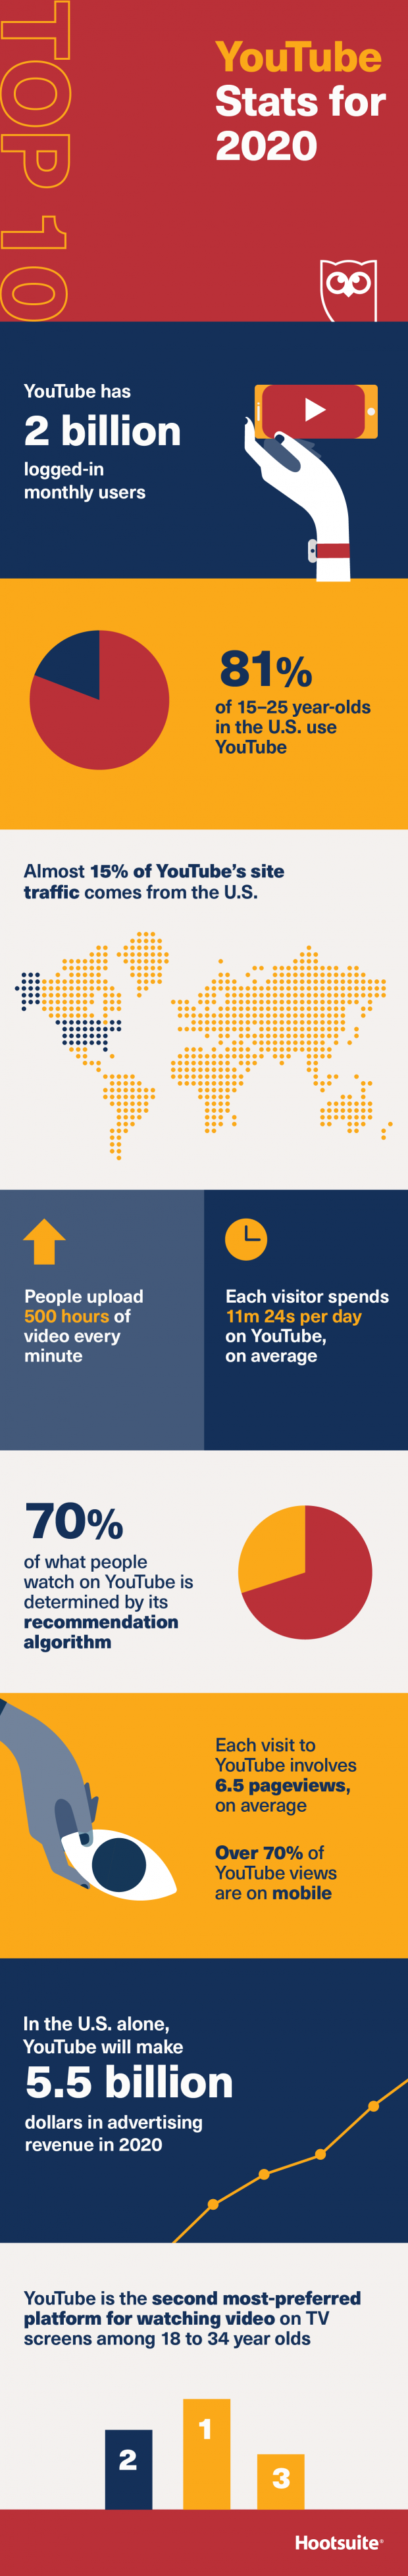 Infographic lists a range of YouTube usage insights